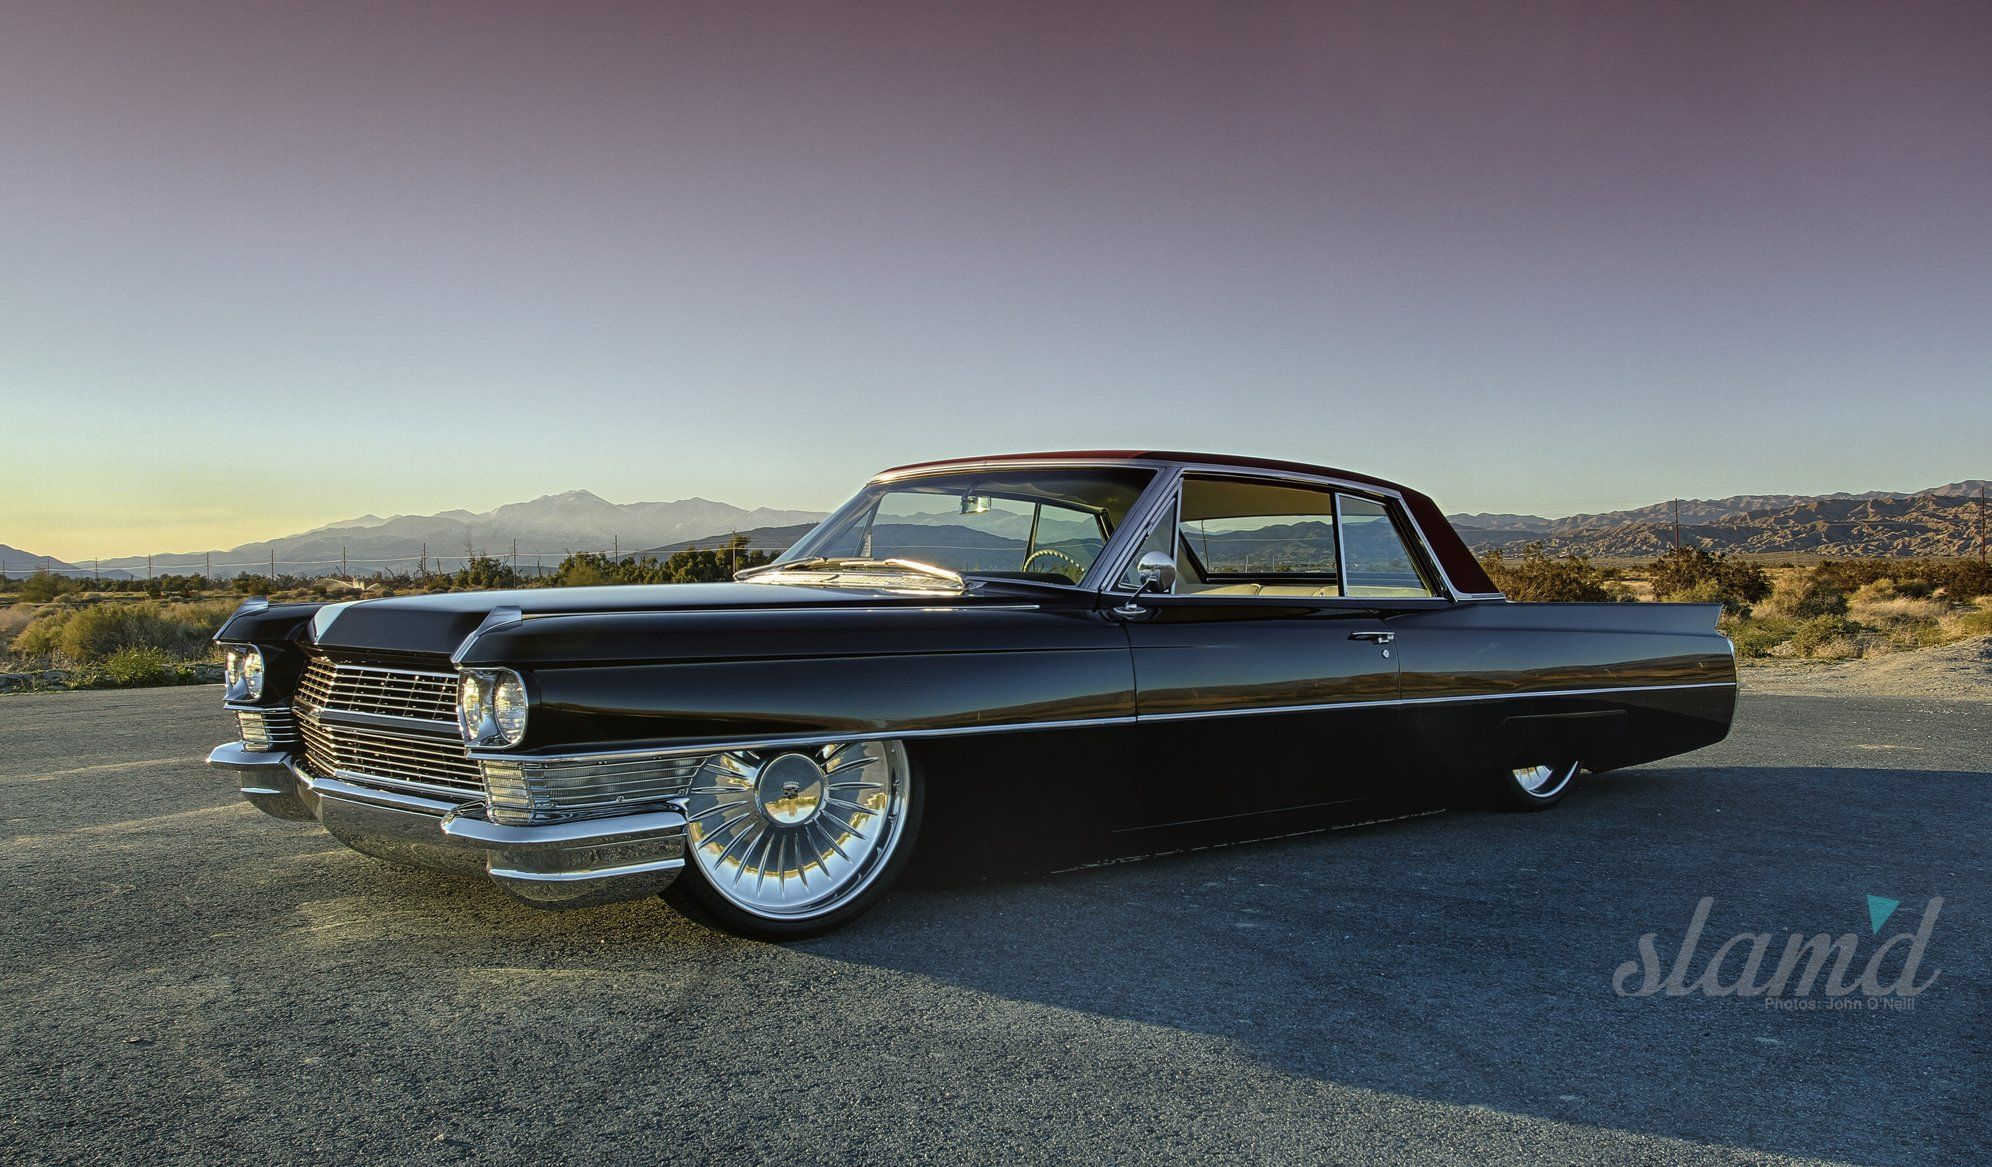 custom 1964 cadillac coupe deville old cars cadillac. Black Bedroom Furniture Sets. Home Design Ideas